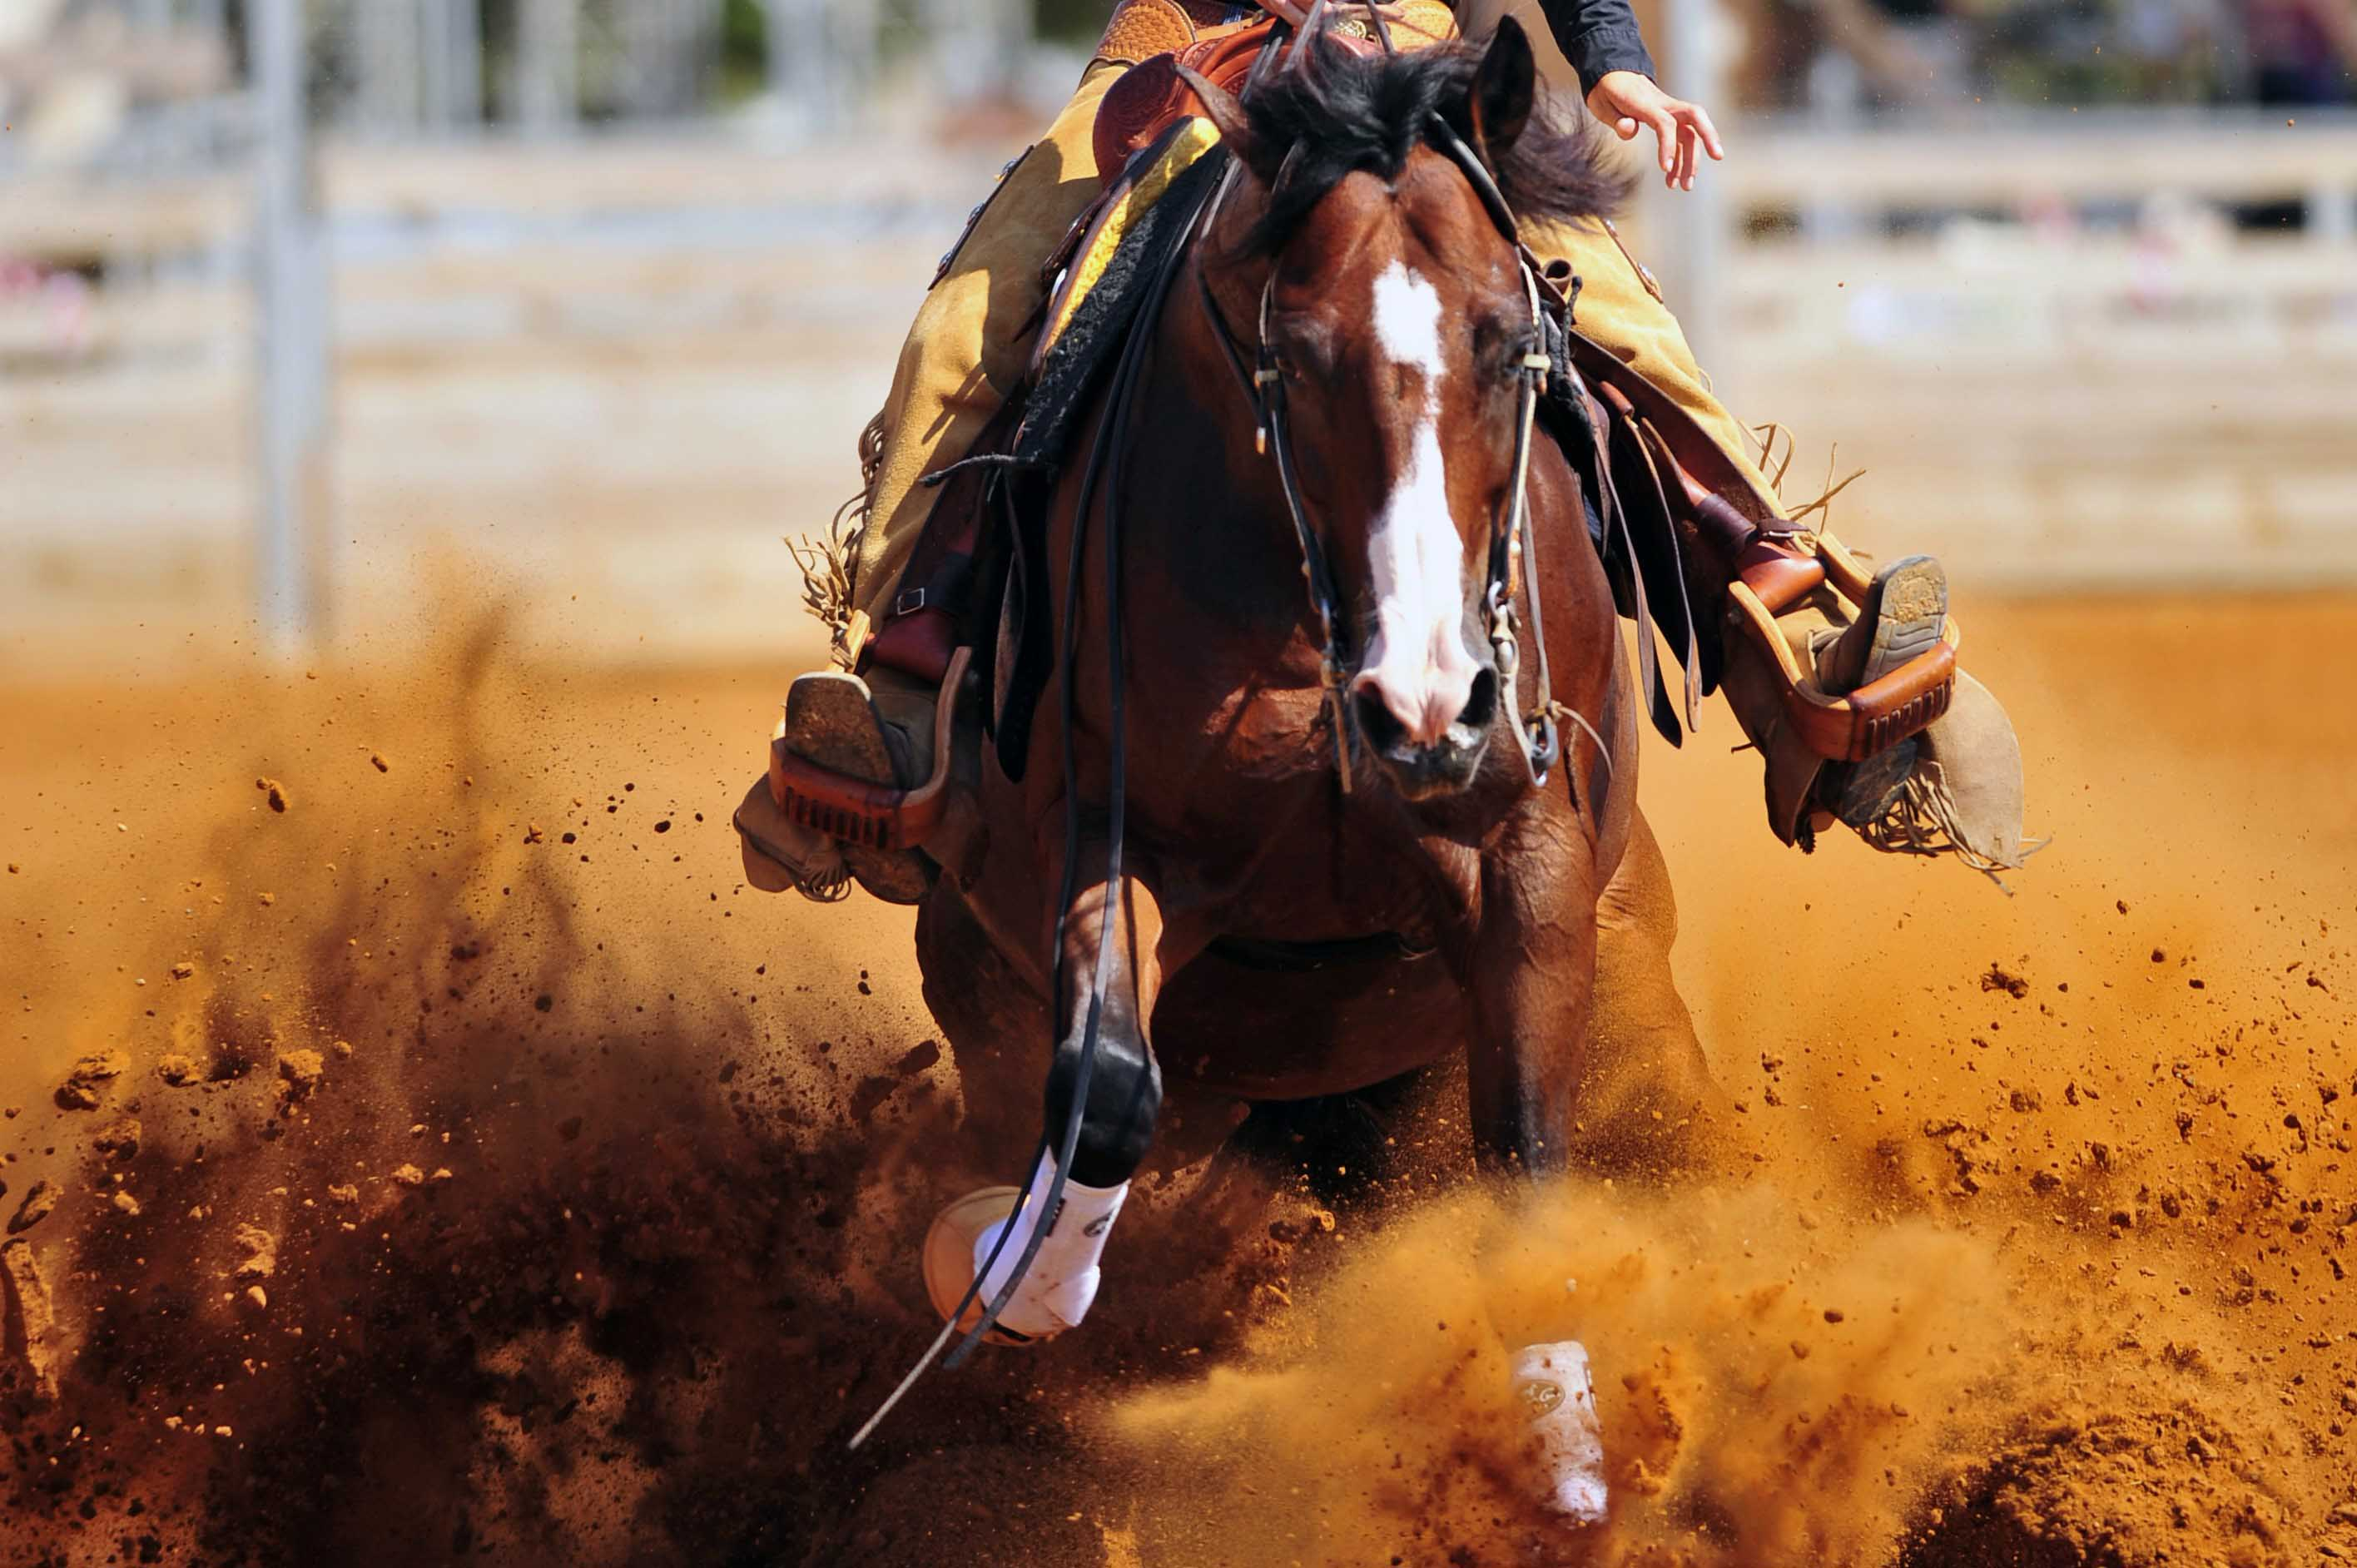 Rider on horse kicking up dirt in a rodeo arena